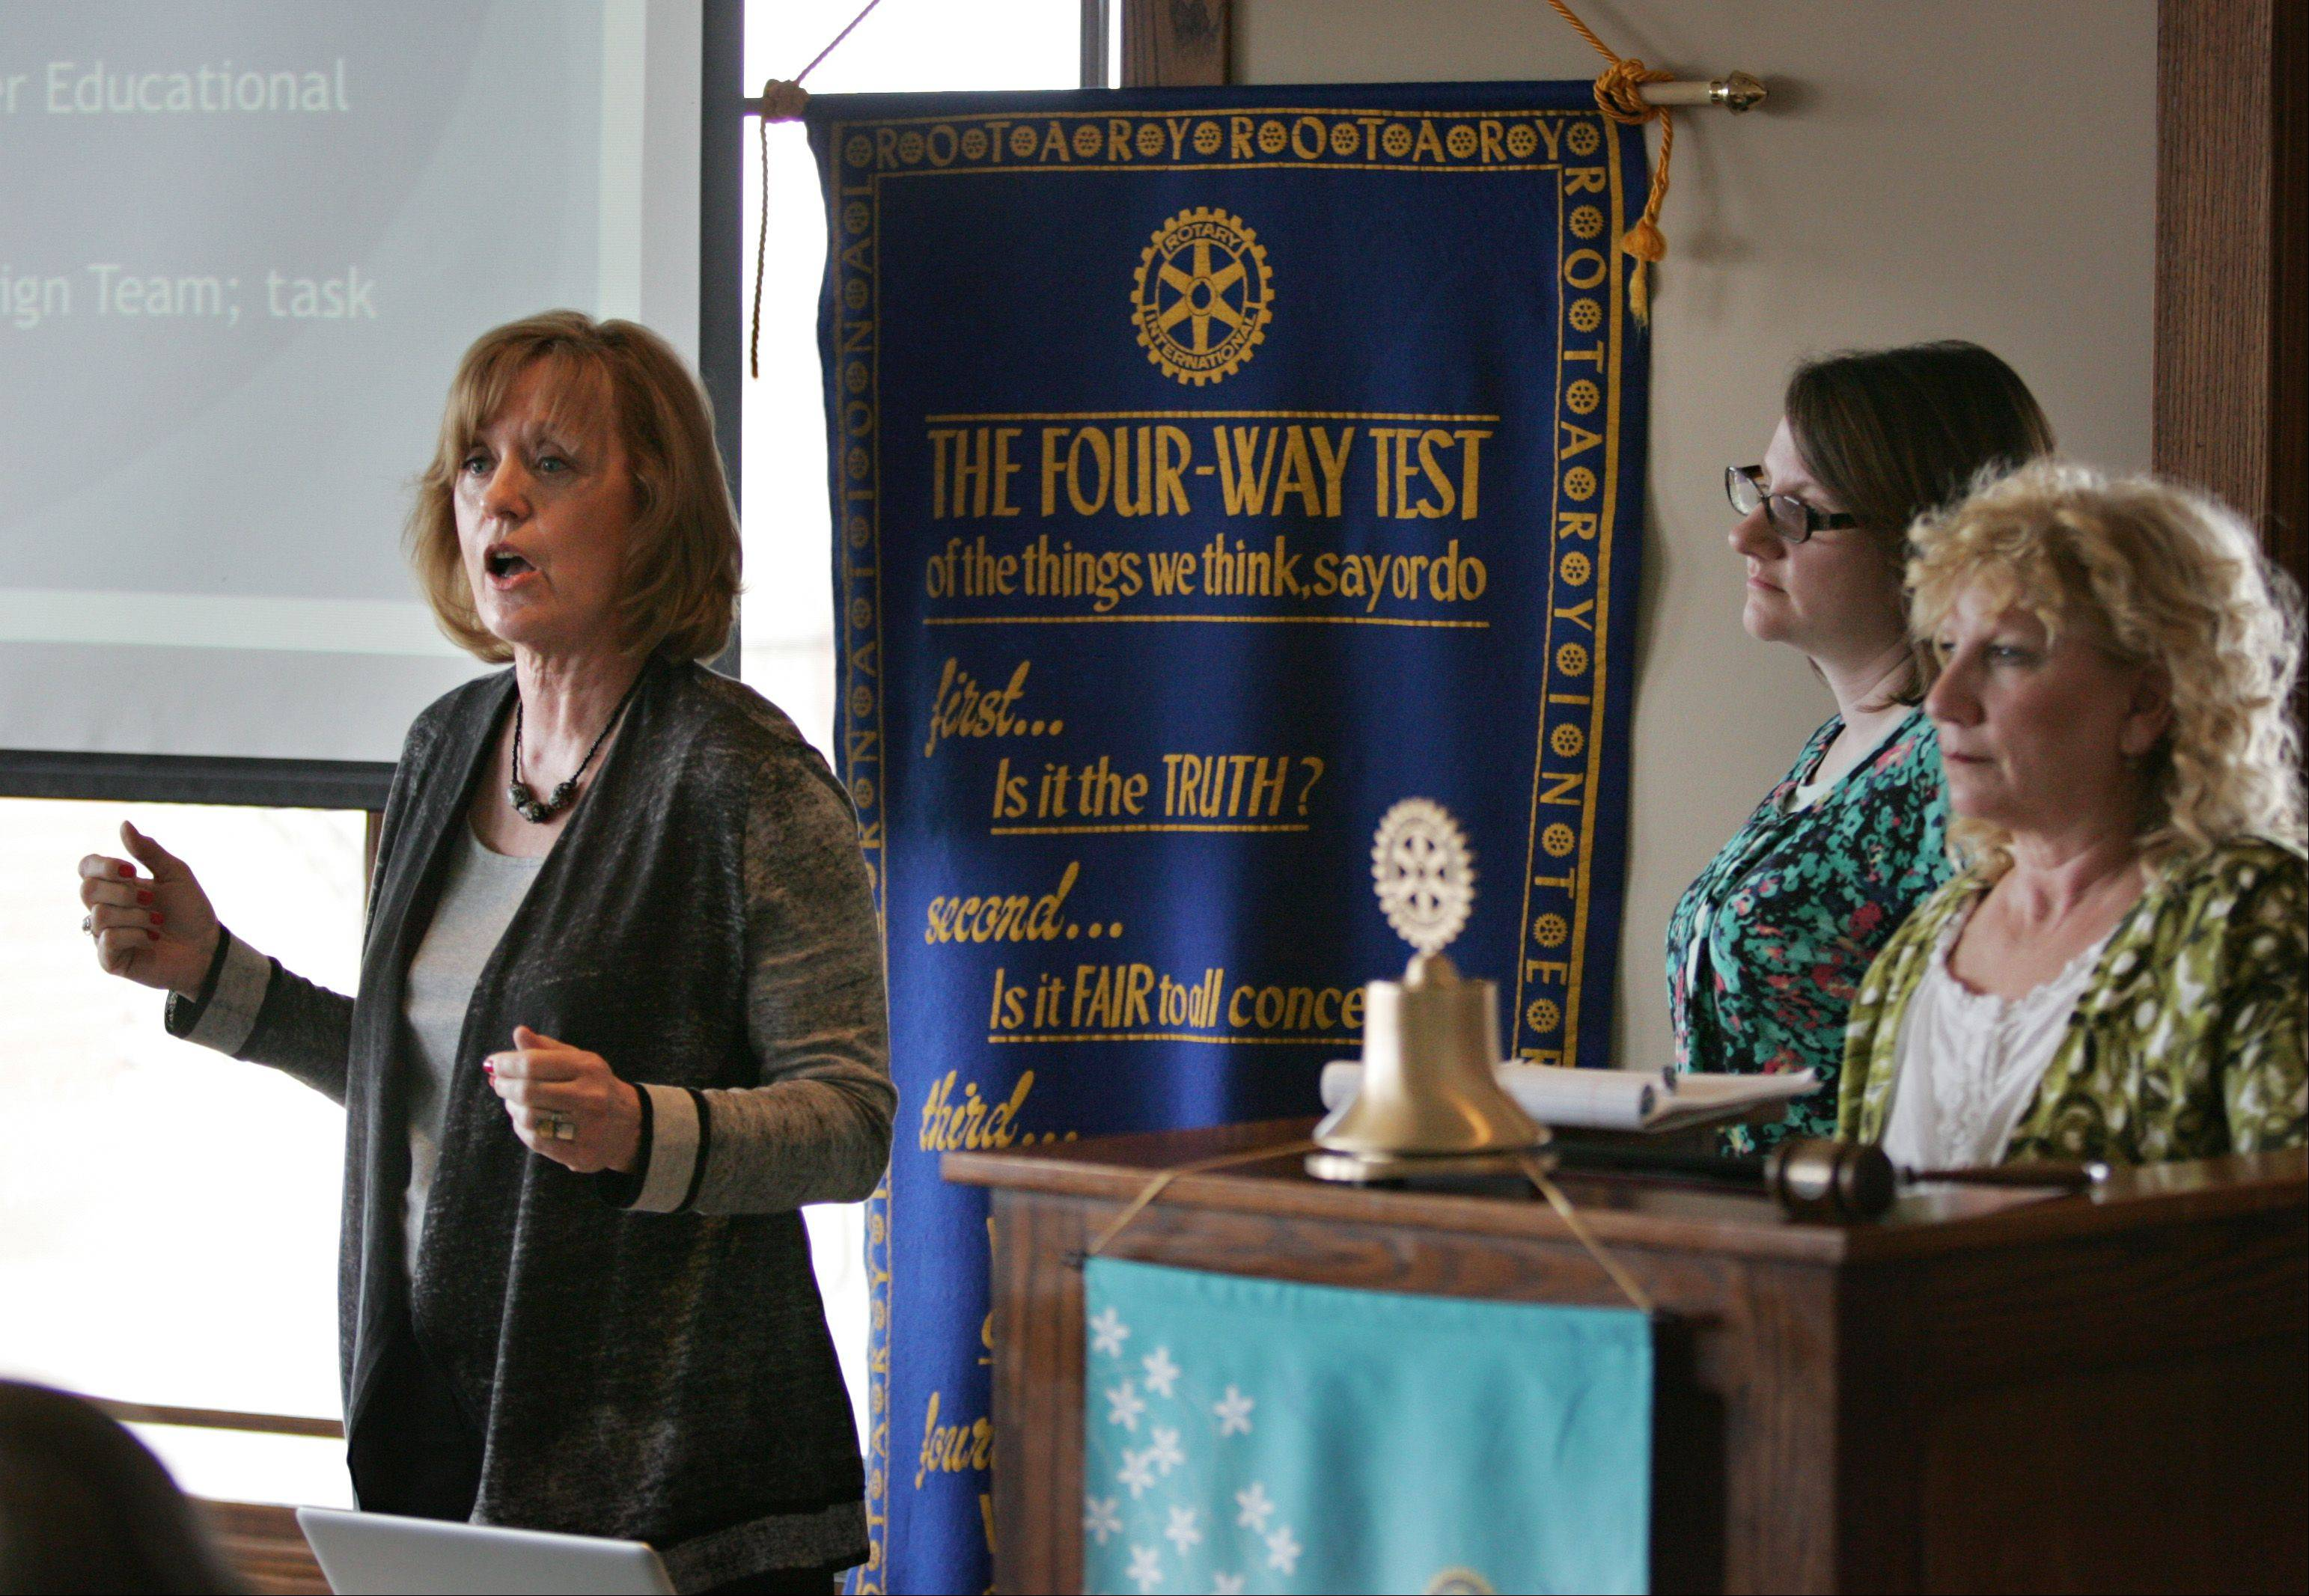 Karen Schock of the Elgin Charter School Initiative talks to members of the Elgin Noon Rotary Club on April 15 at the Hickory Stick restaurant in Elgin. Also pictured are Kari White, center, and Krissy Palermo, right.